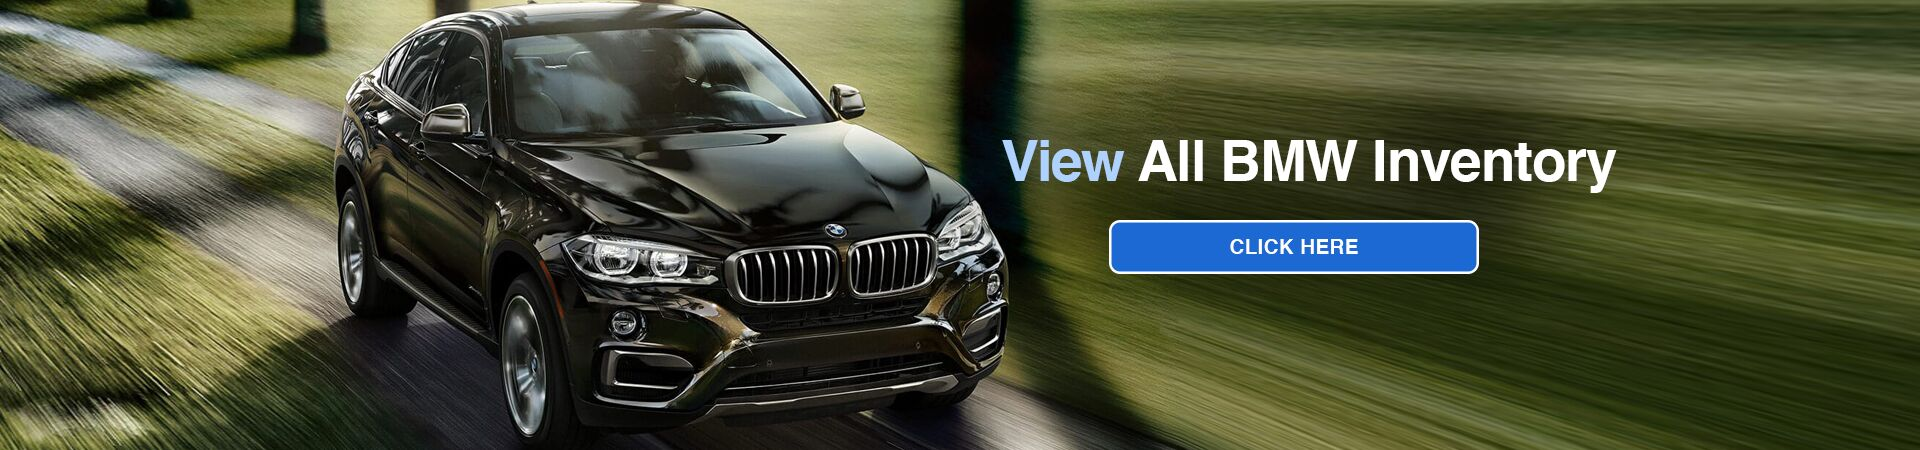 View BMW Inventory